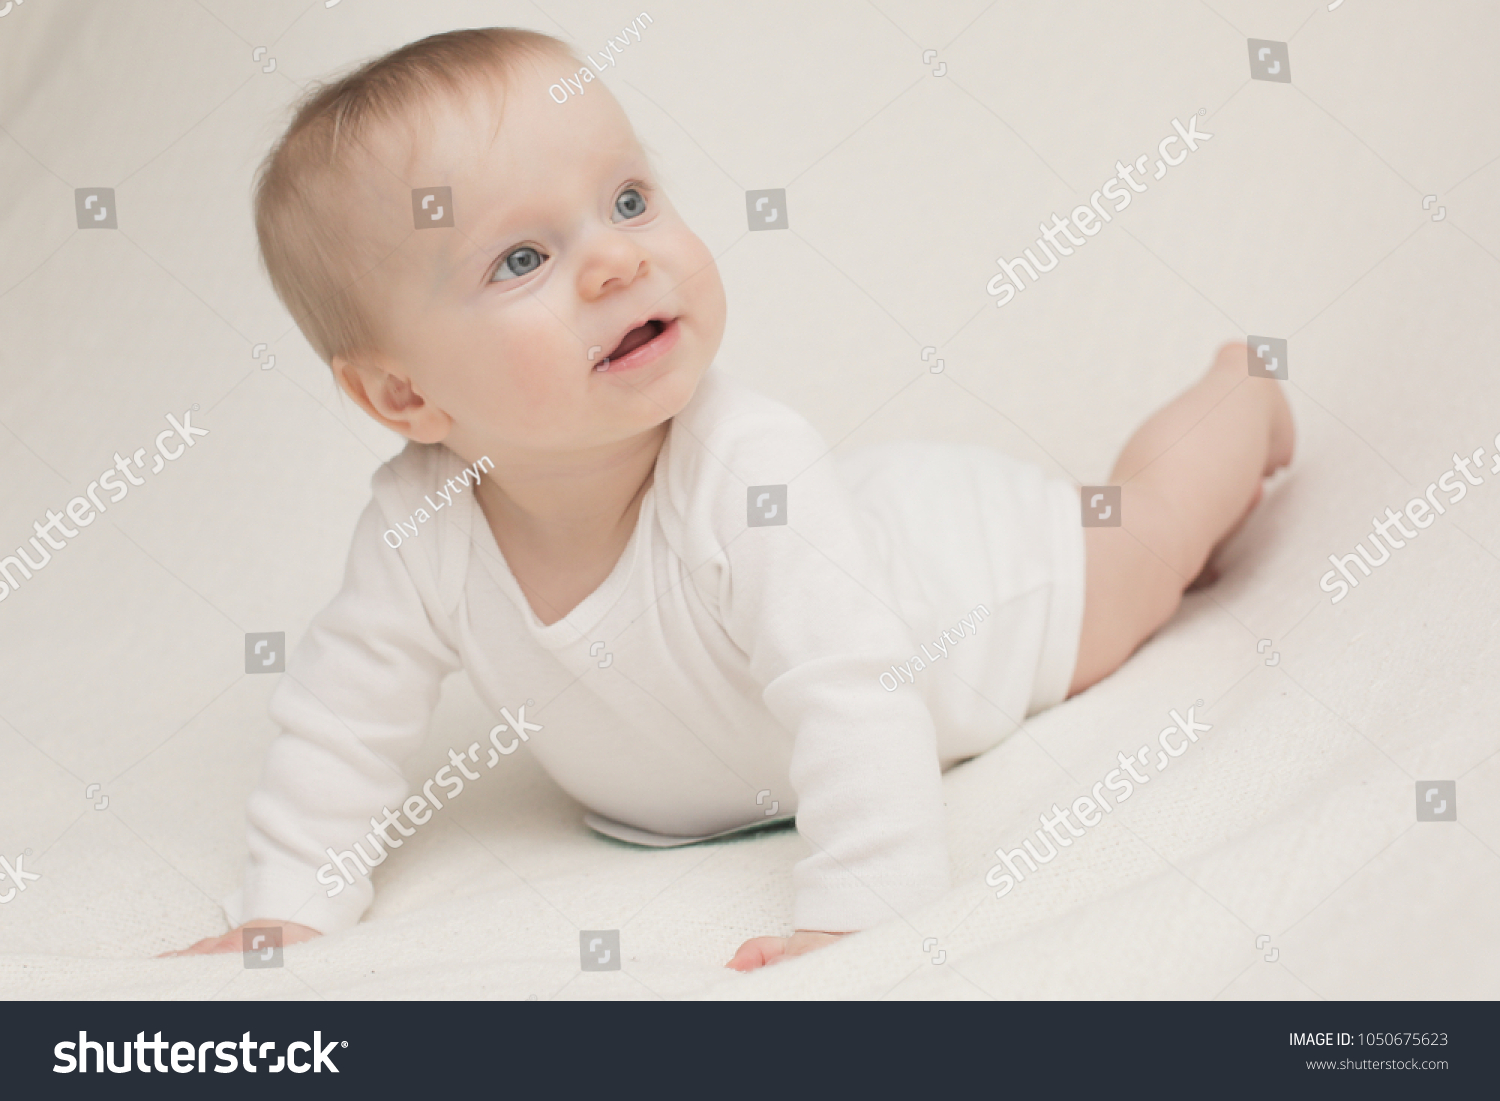 A 8 month old happy baby girl in front of a white background blonde